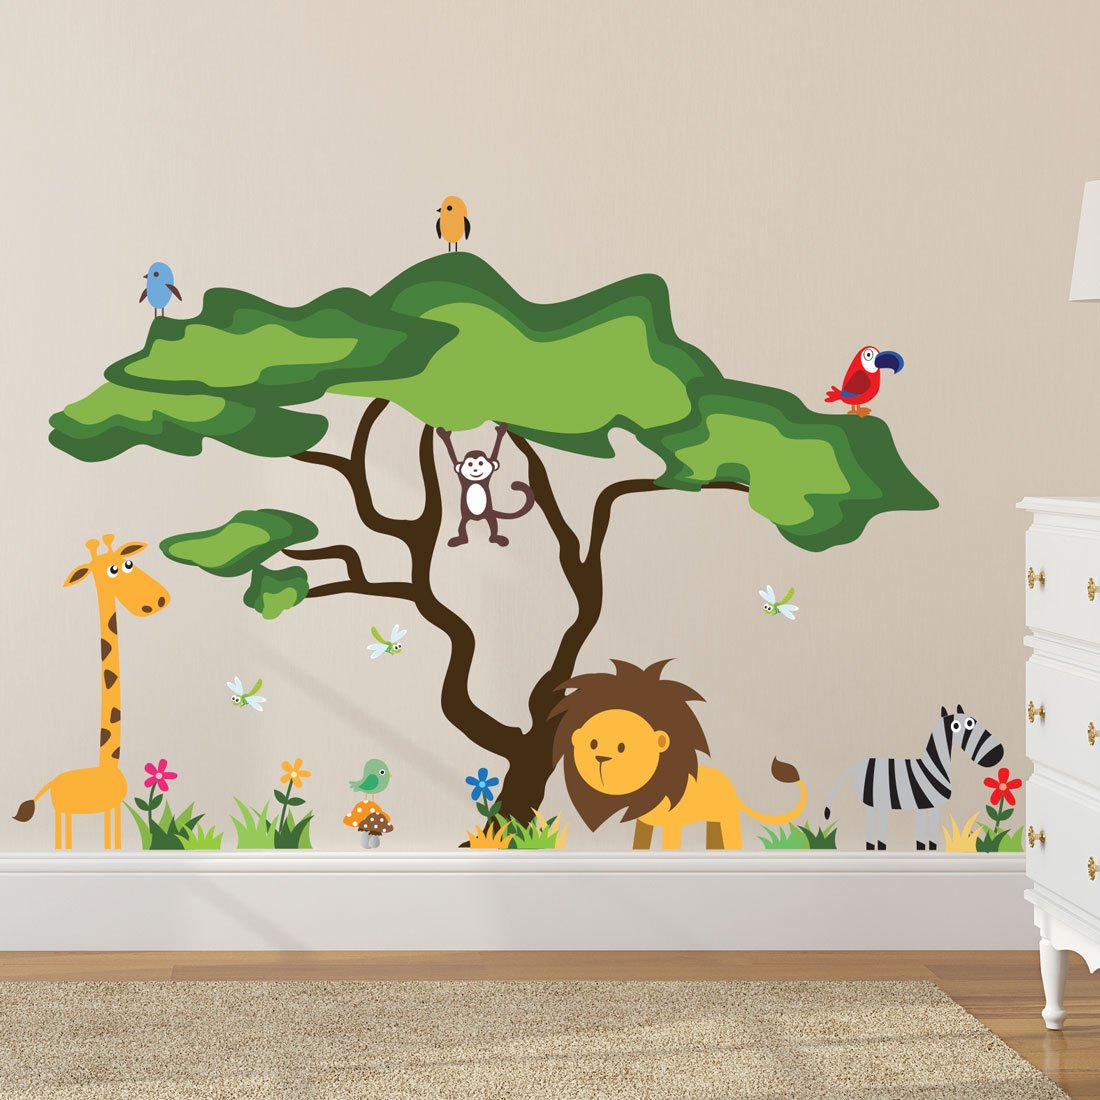 Timber Artbox Cute Animals in The Jungle Wall Decals - Giant Bright Stickers to Put A Smile on Kids & Toddlers by Timber Artbox